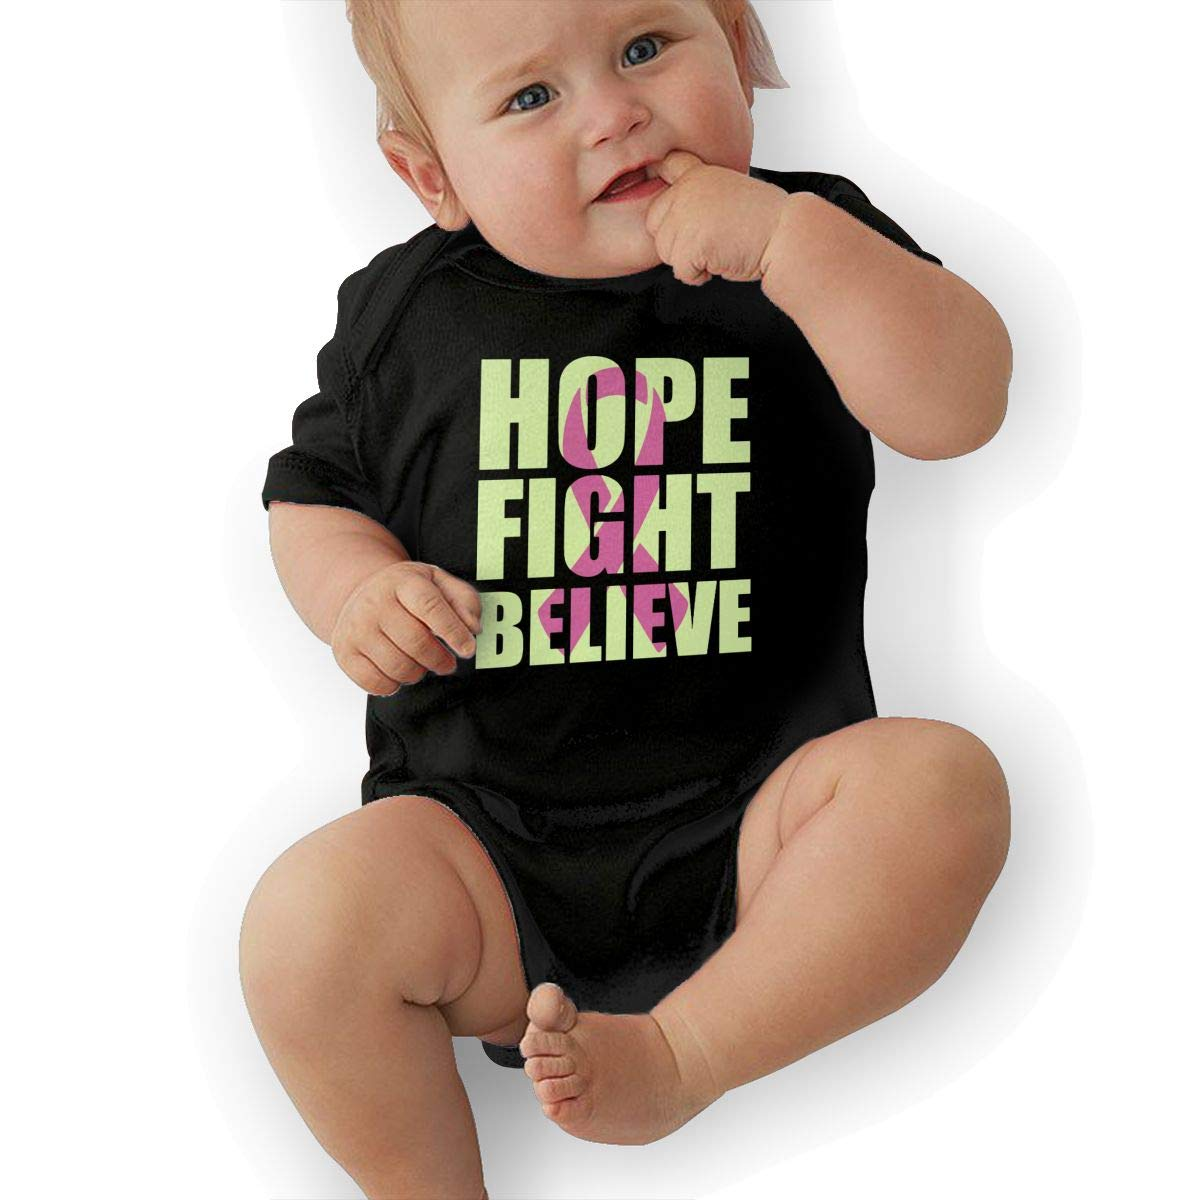 Cancer Hope Fight Believe Printed Infant Baby Boy Girl Short-Sleeved Jumpsuits Playsuit Outfits